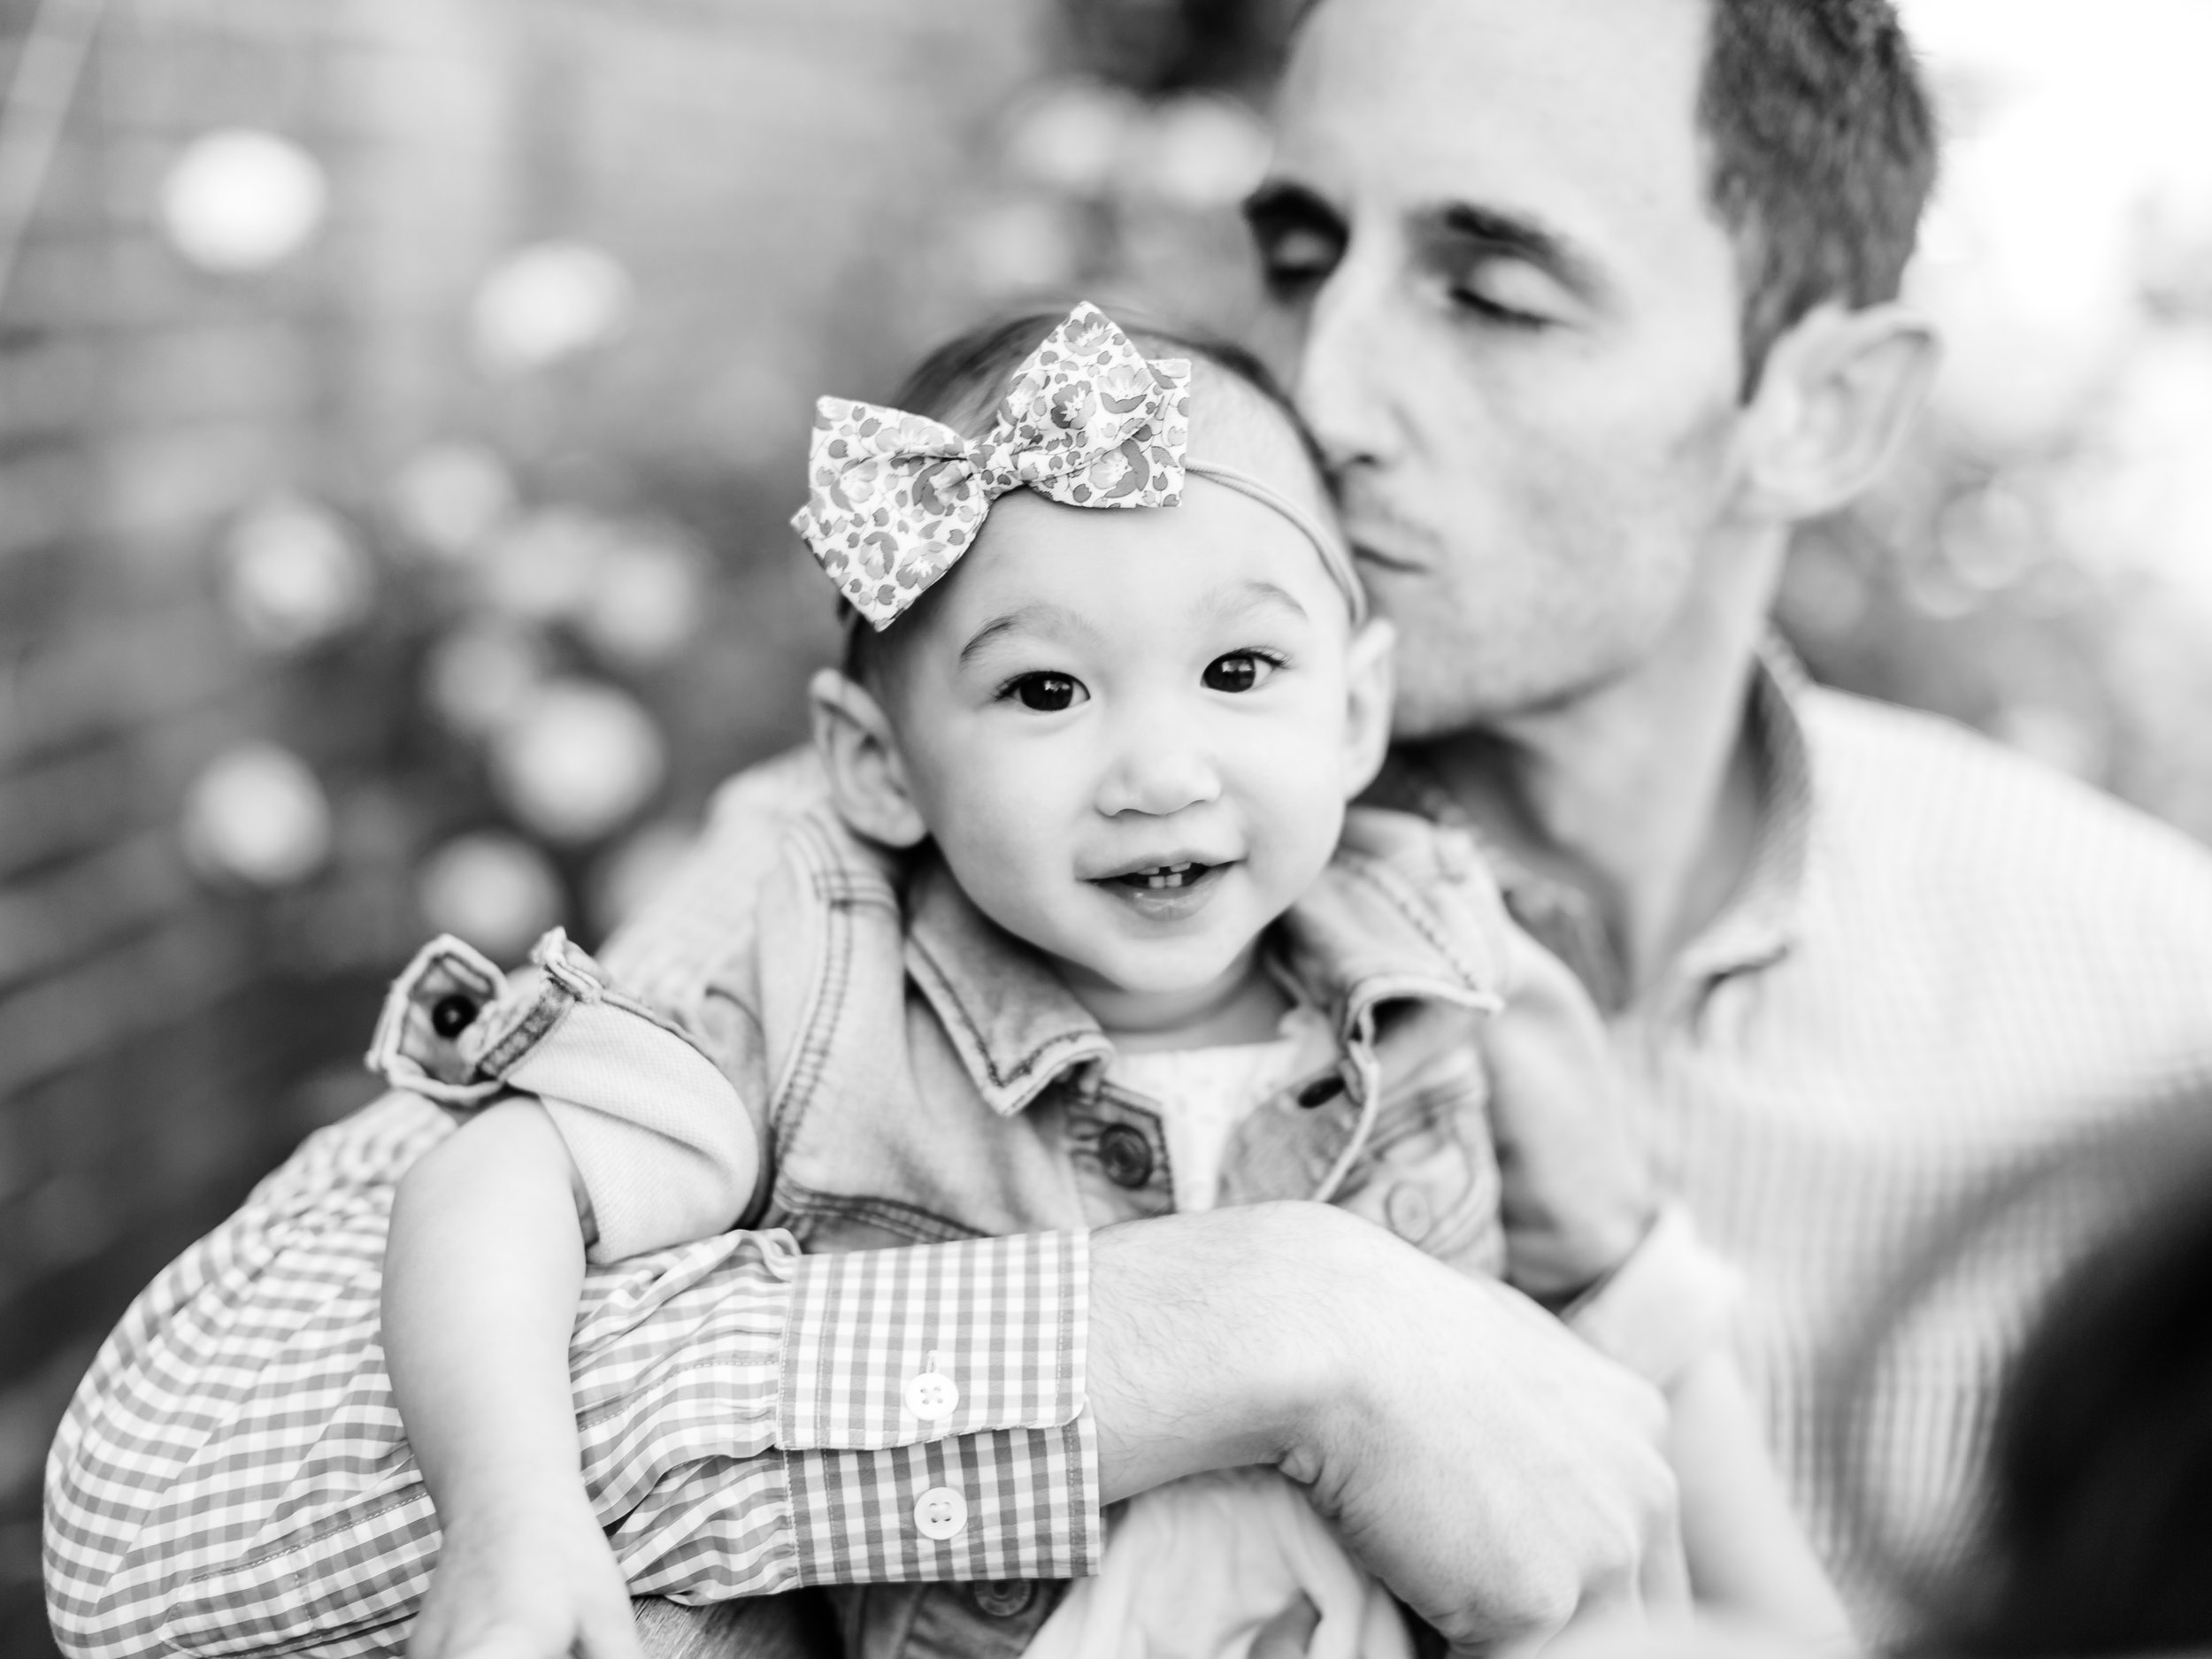 jenny grimm photography chicago family baby lifestyle photographer